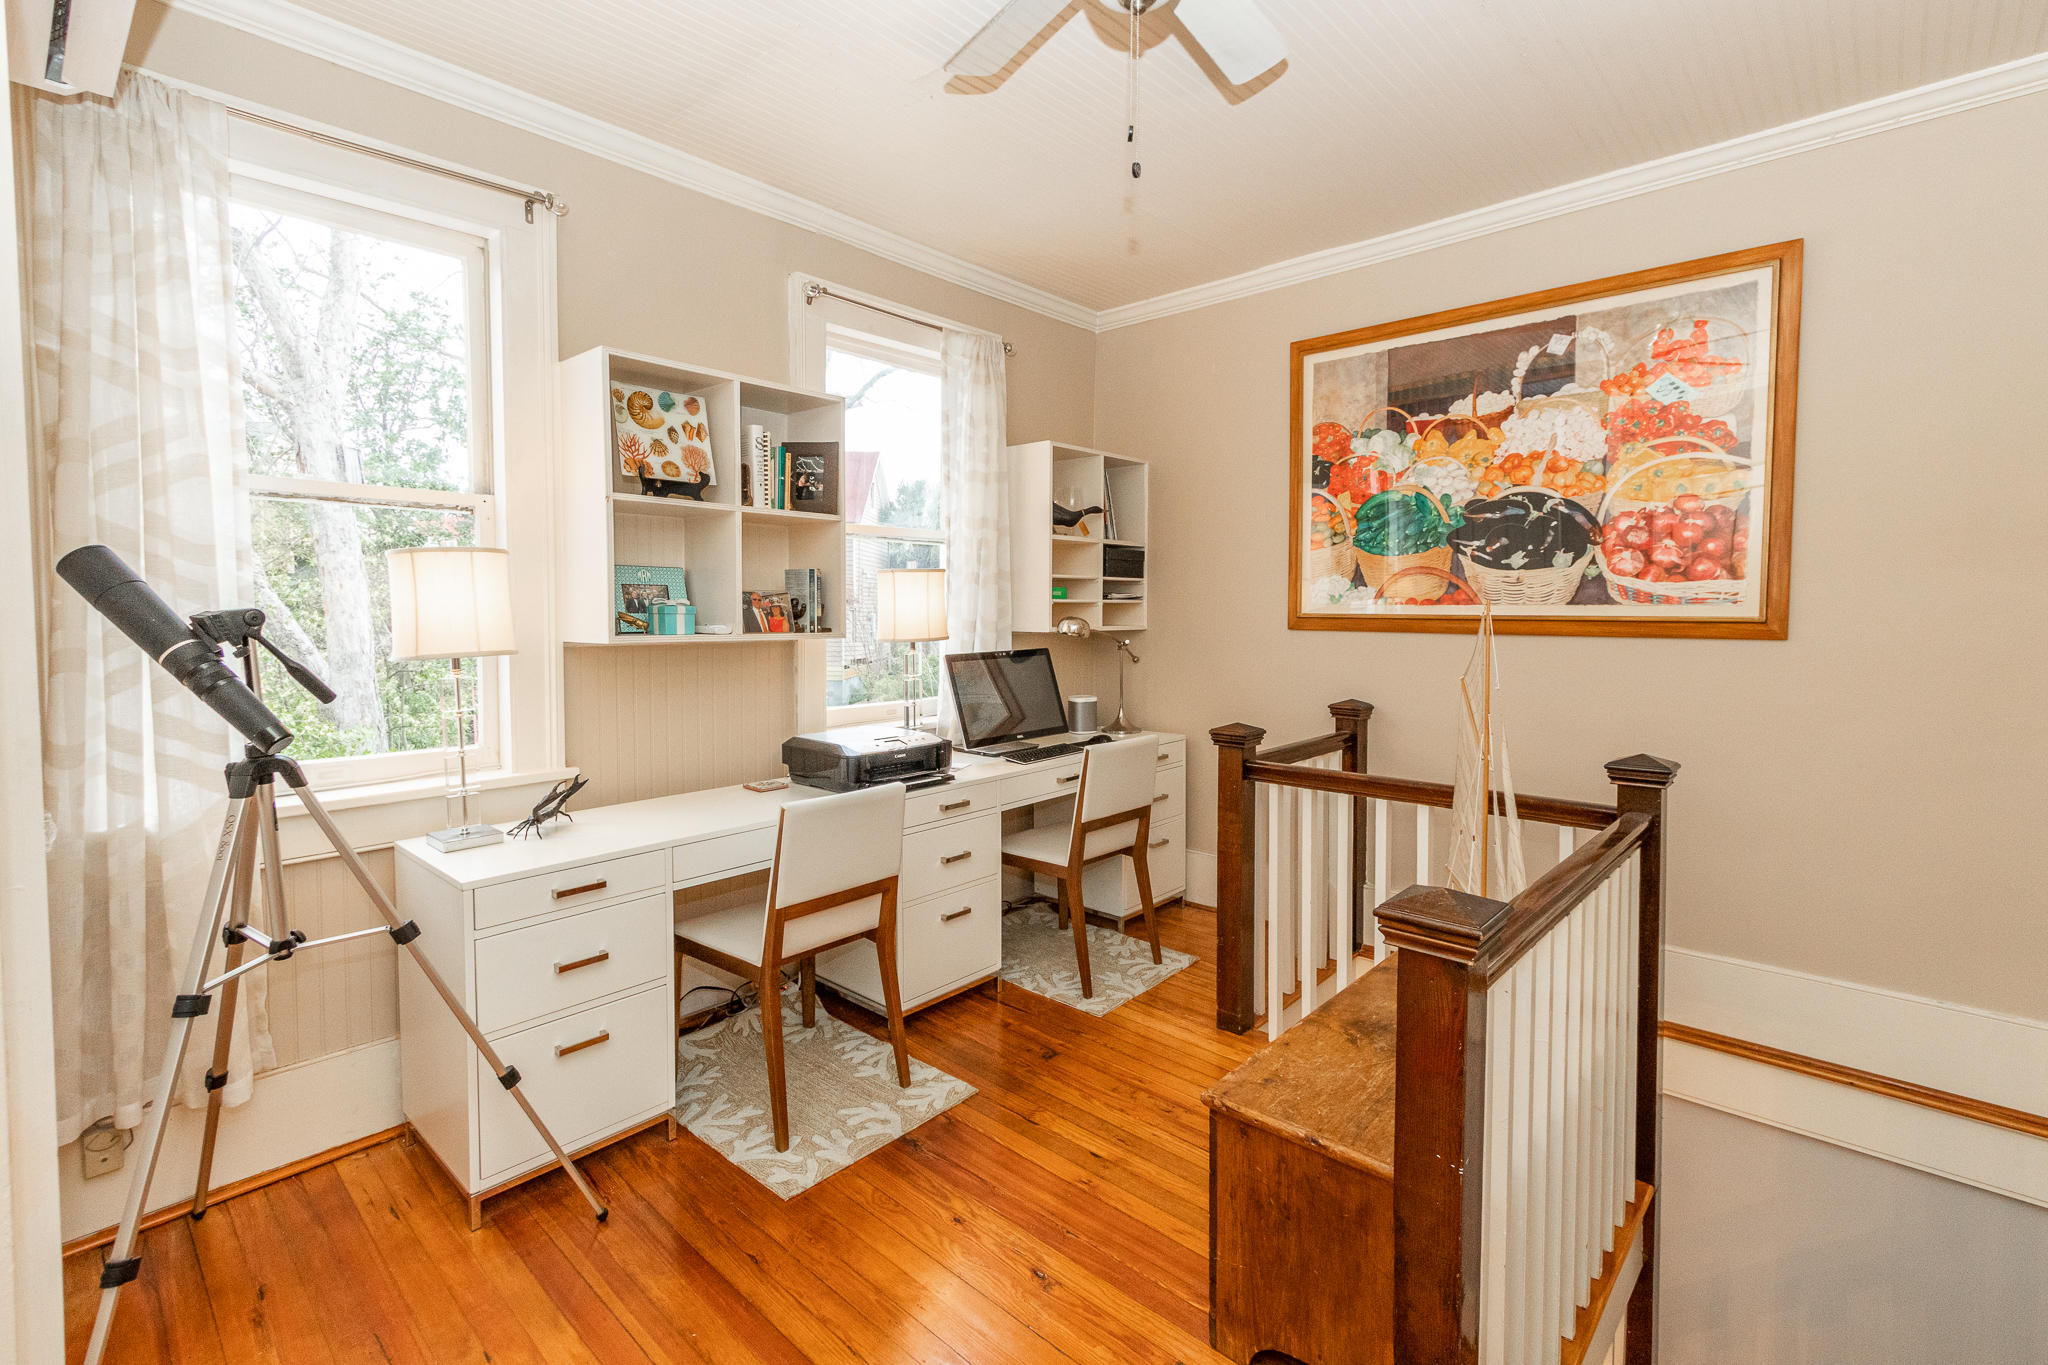 South of Broad Homes For Sale - 164 Tradd, Charleston, SC - 36